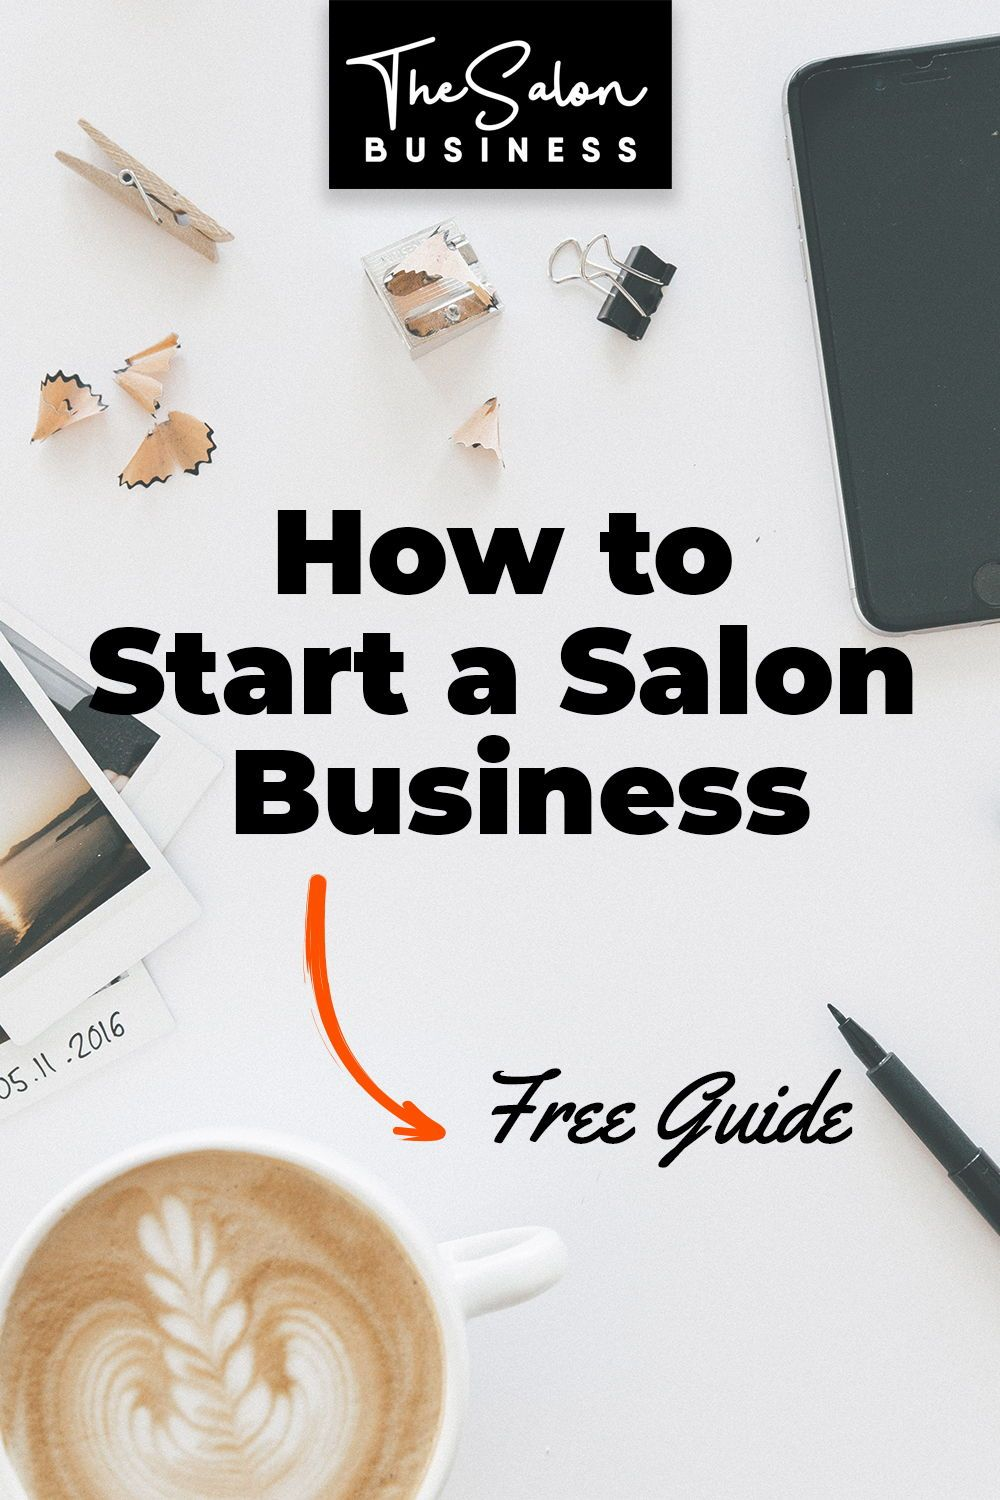 How to Open a Salon (with or without Money) 29 Proven Steps